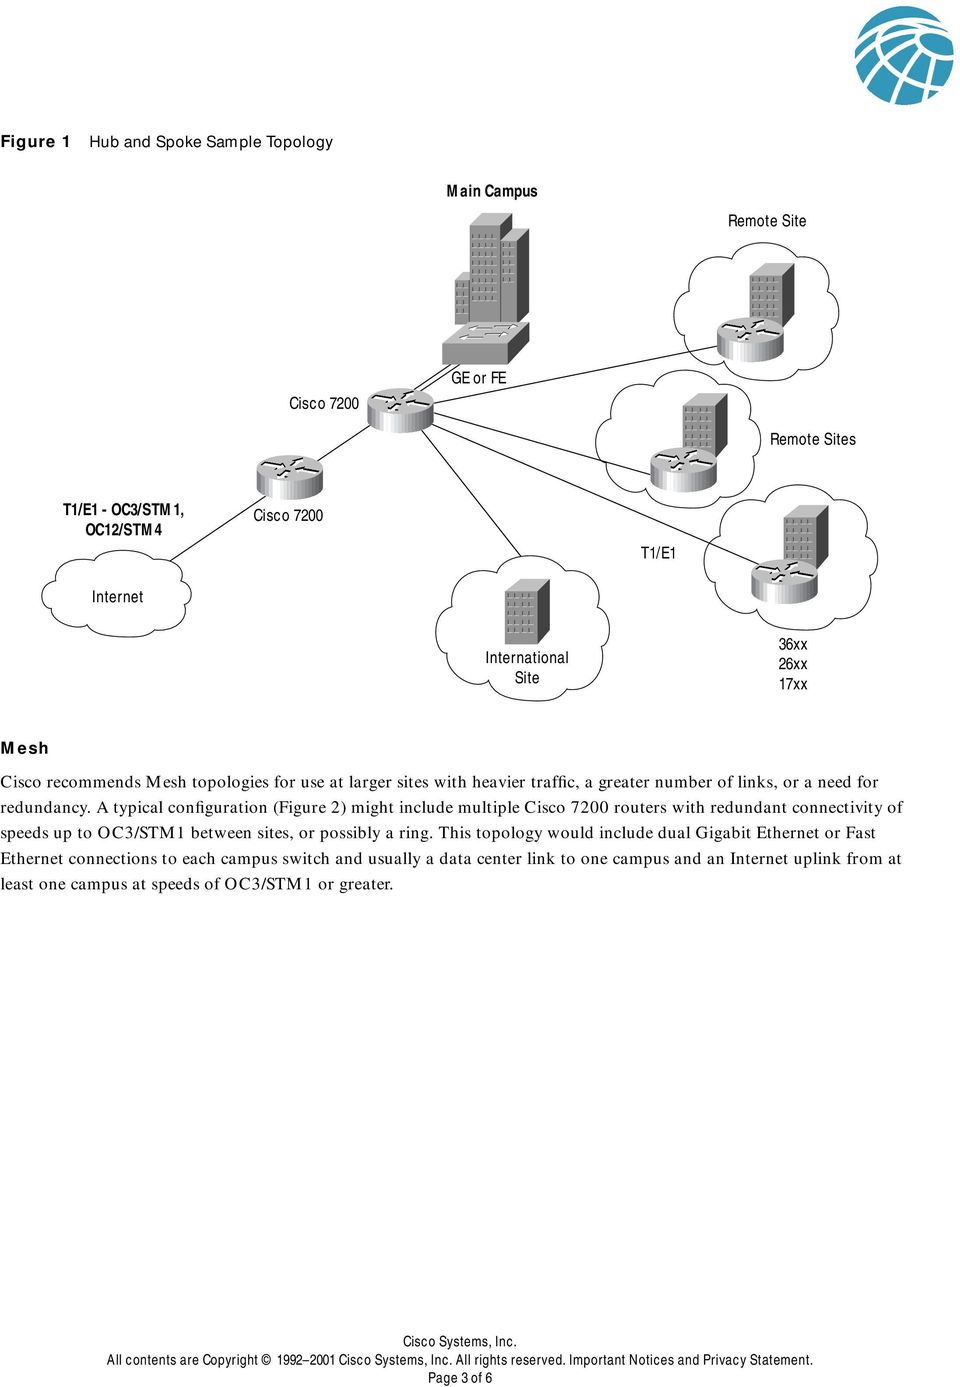 A typical configuration (Figure 2) might include multiple routers with redundant connectivity of speeds up to OC3/STM1 between sites, or possibly a ring.